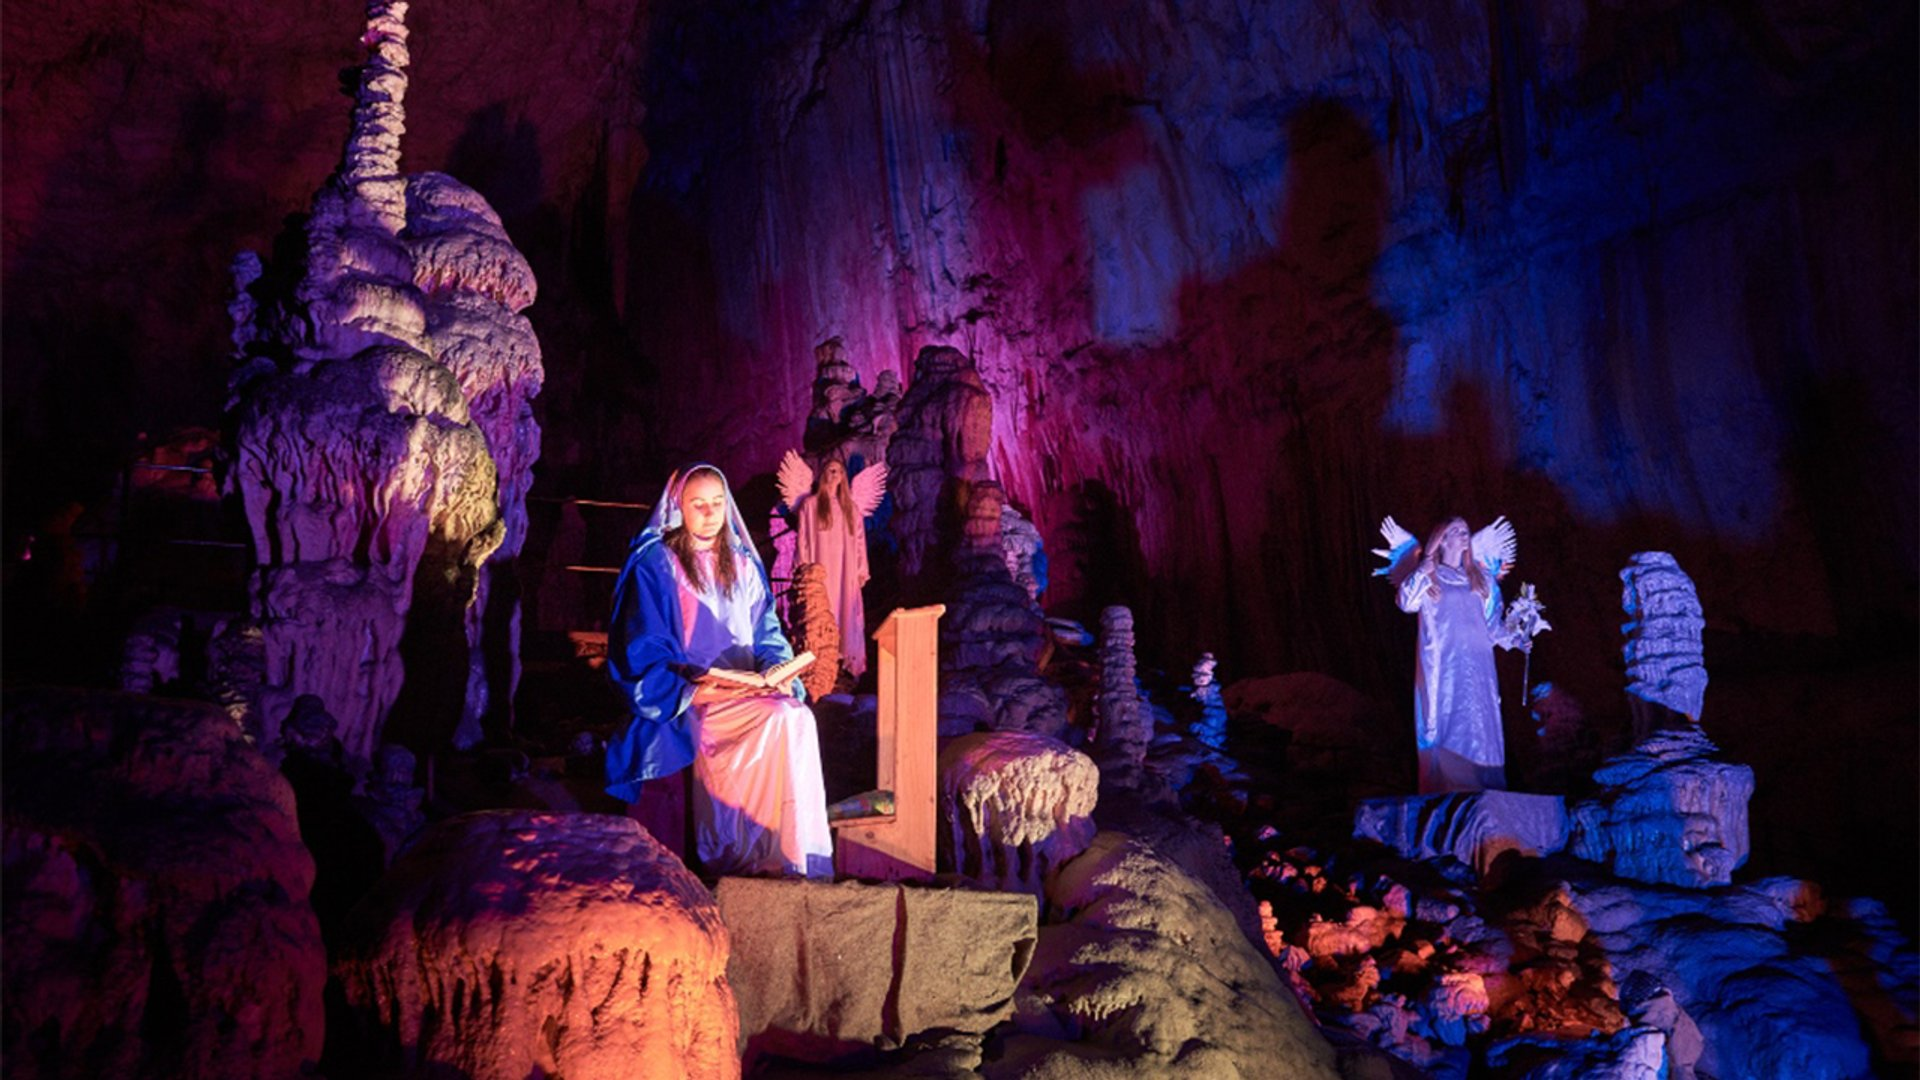 Living Nativity Scenes in Slovenia 2020 - Best Time